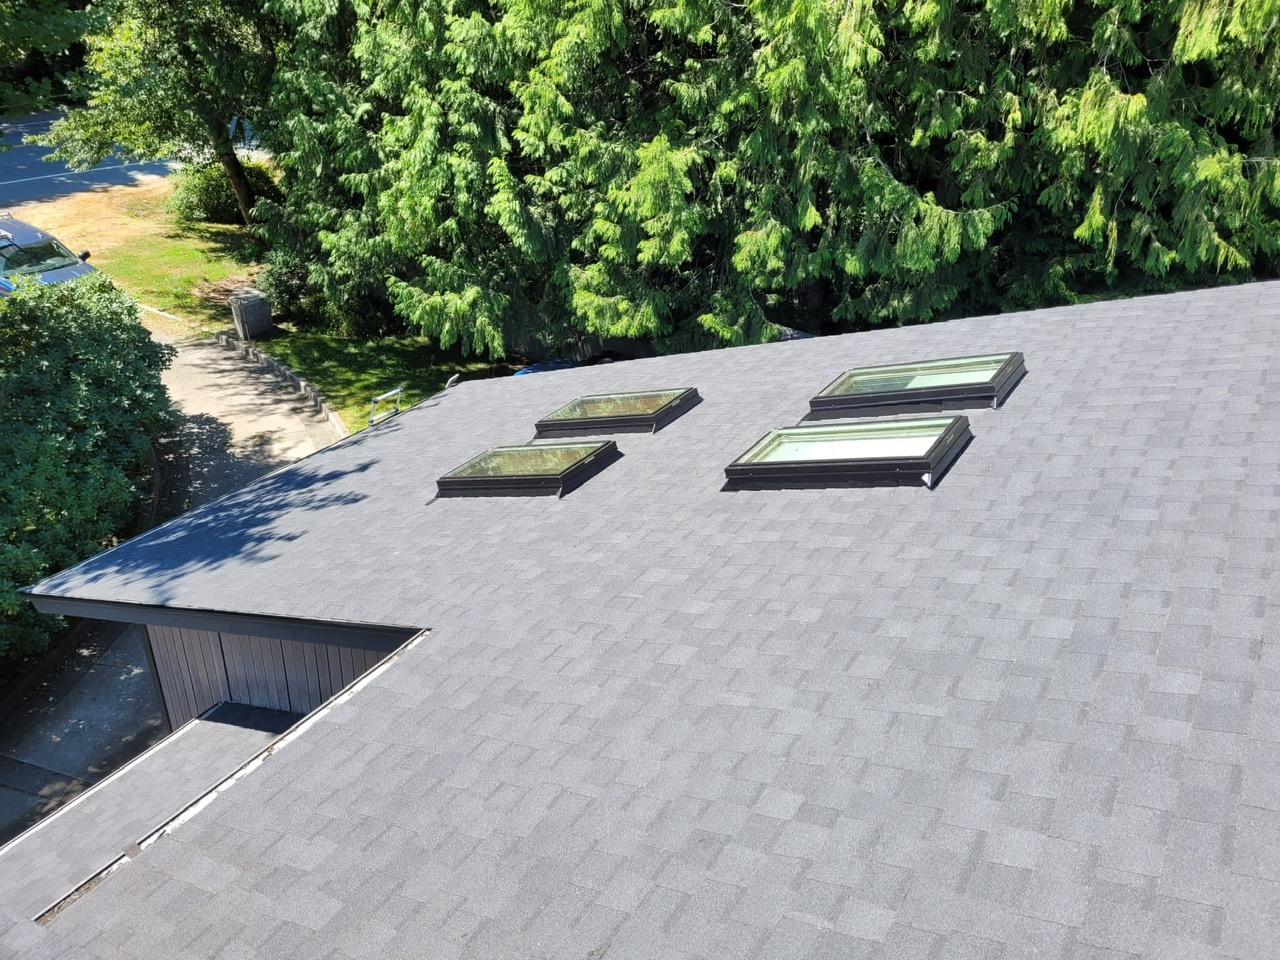 New roof and skylights in Squamish, BC